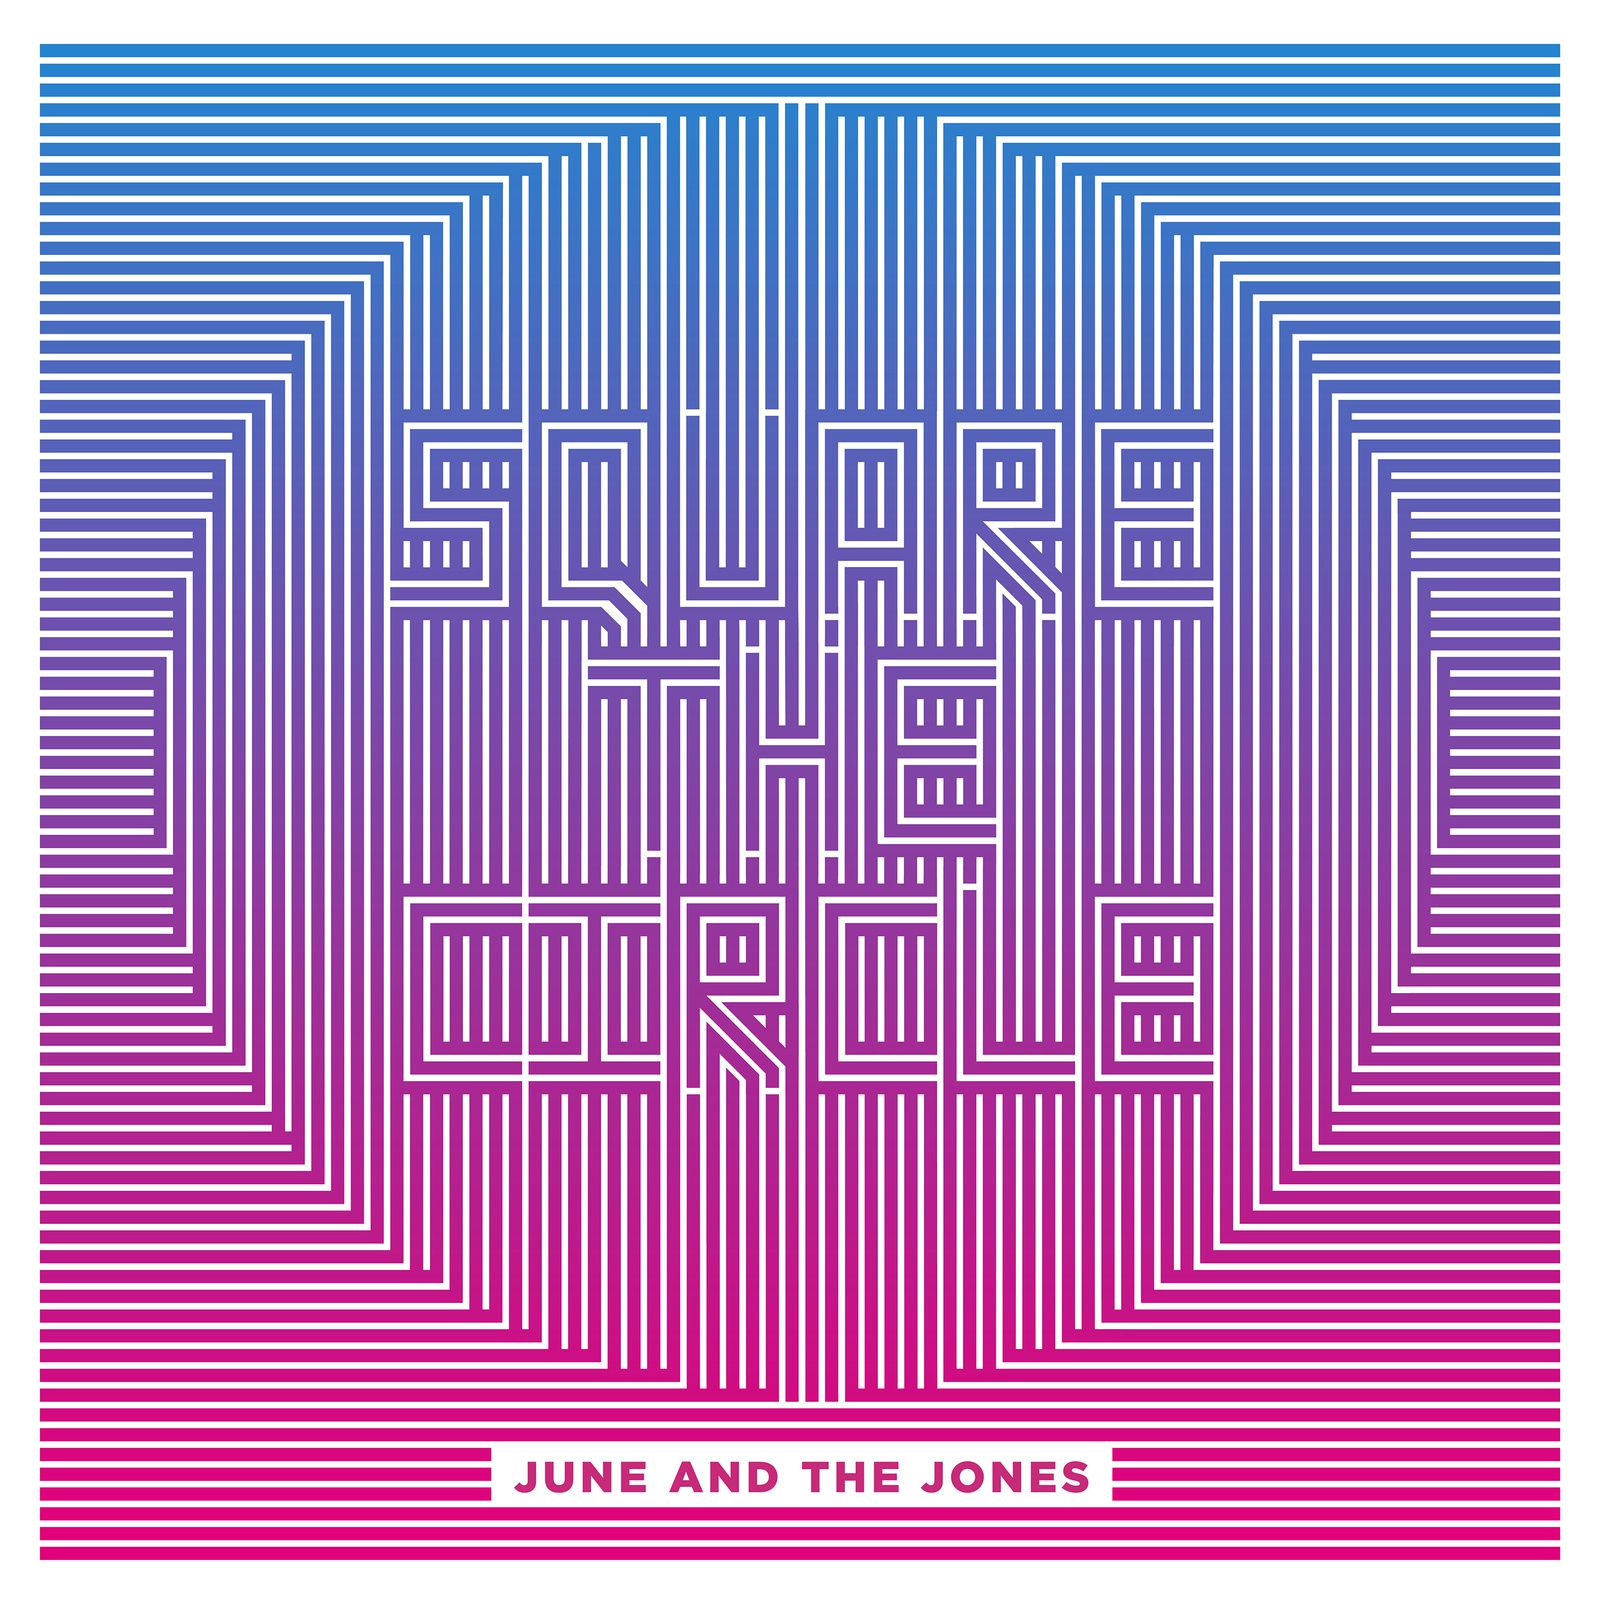 Square The Circle, June and The Jones